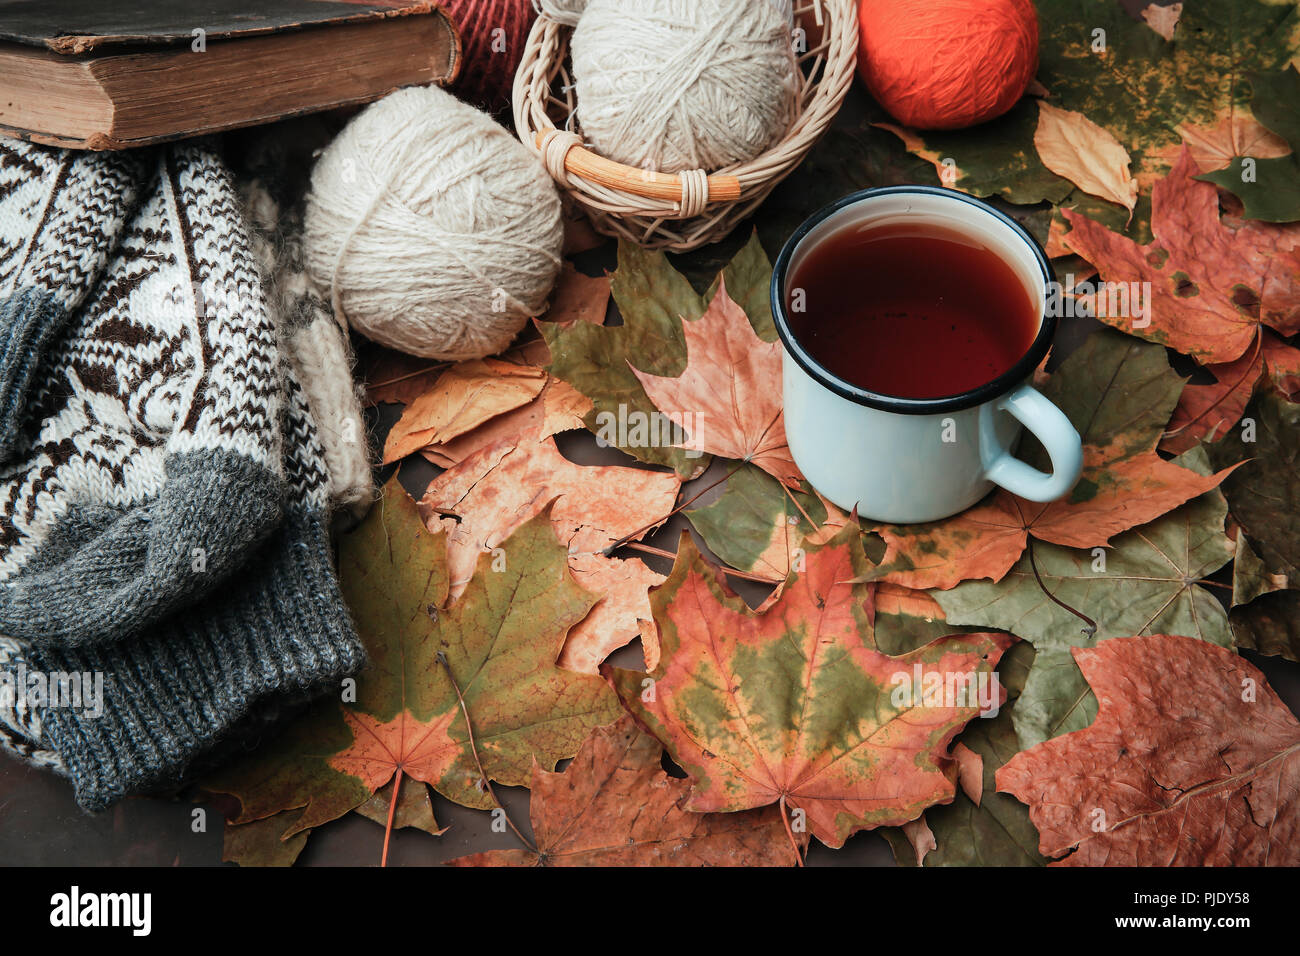 Knitting threads in a park on leaves - Stock Image